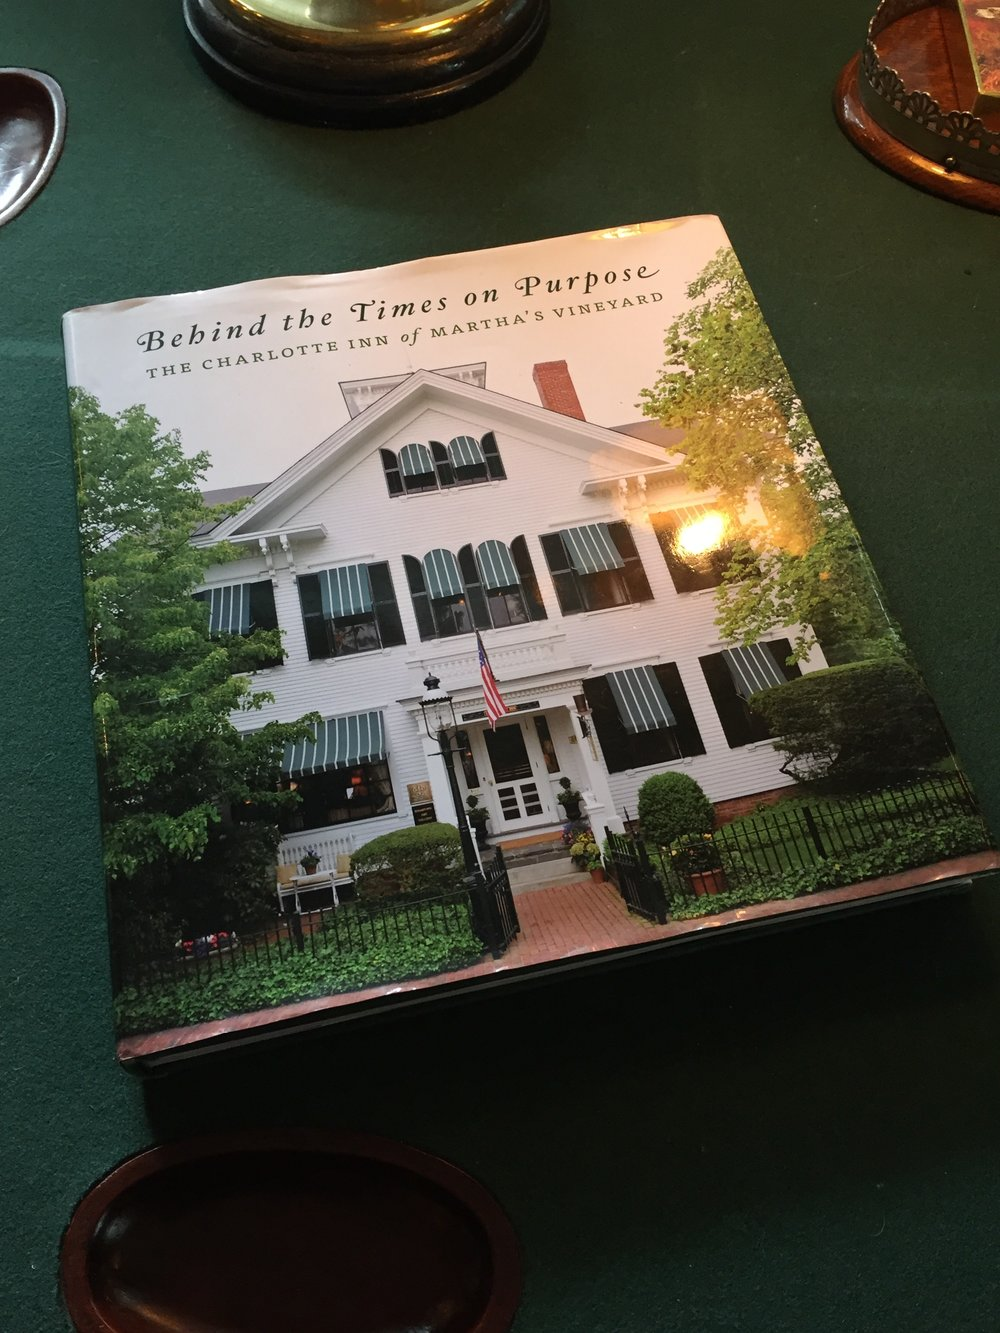 Charlotte Inn's book Behind the Times on Purpose